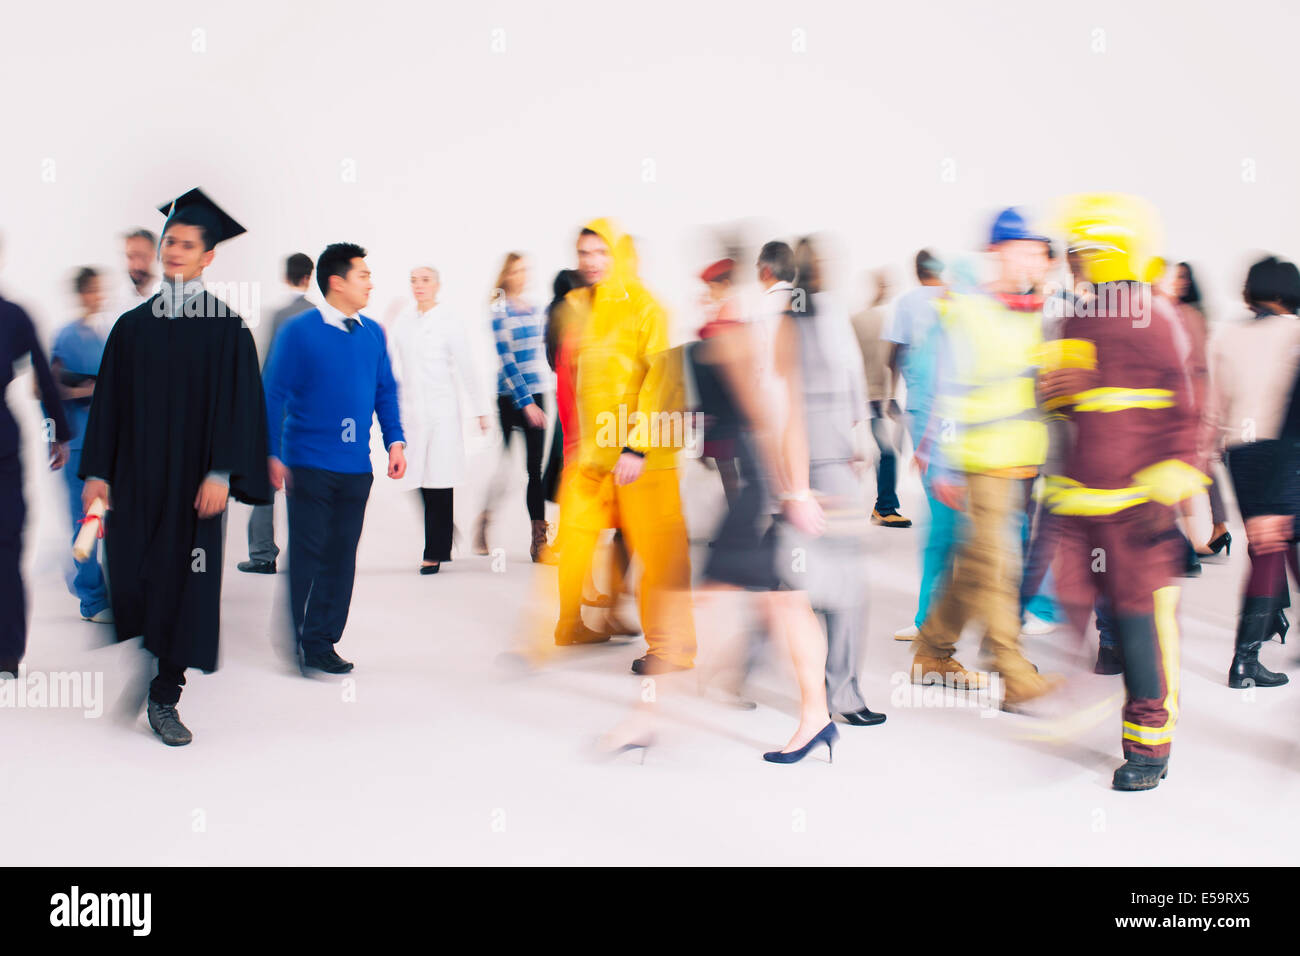 Workforce on the move - Stock Image